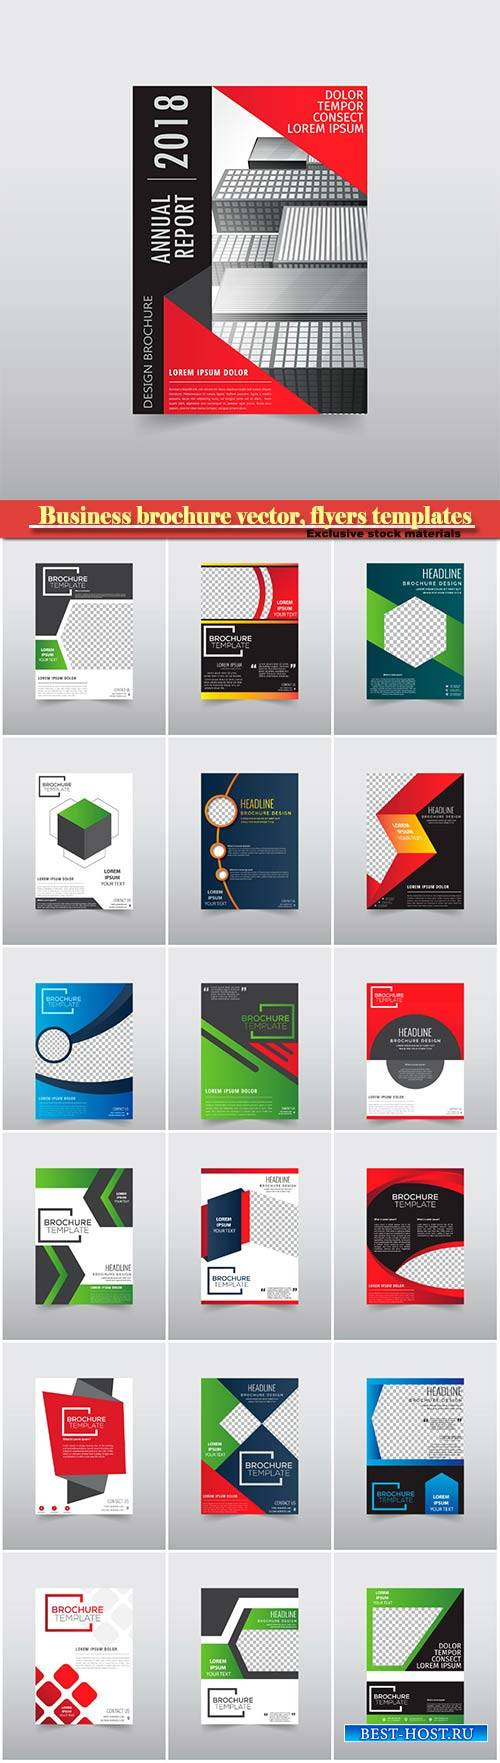 Business brochure vector, flyers templates # 29